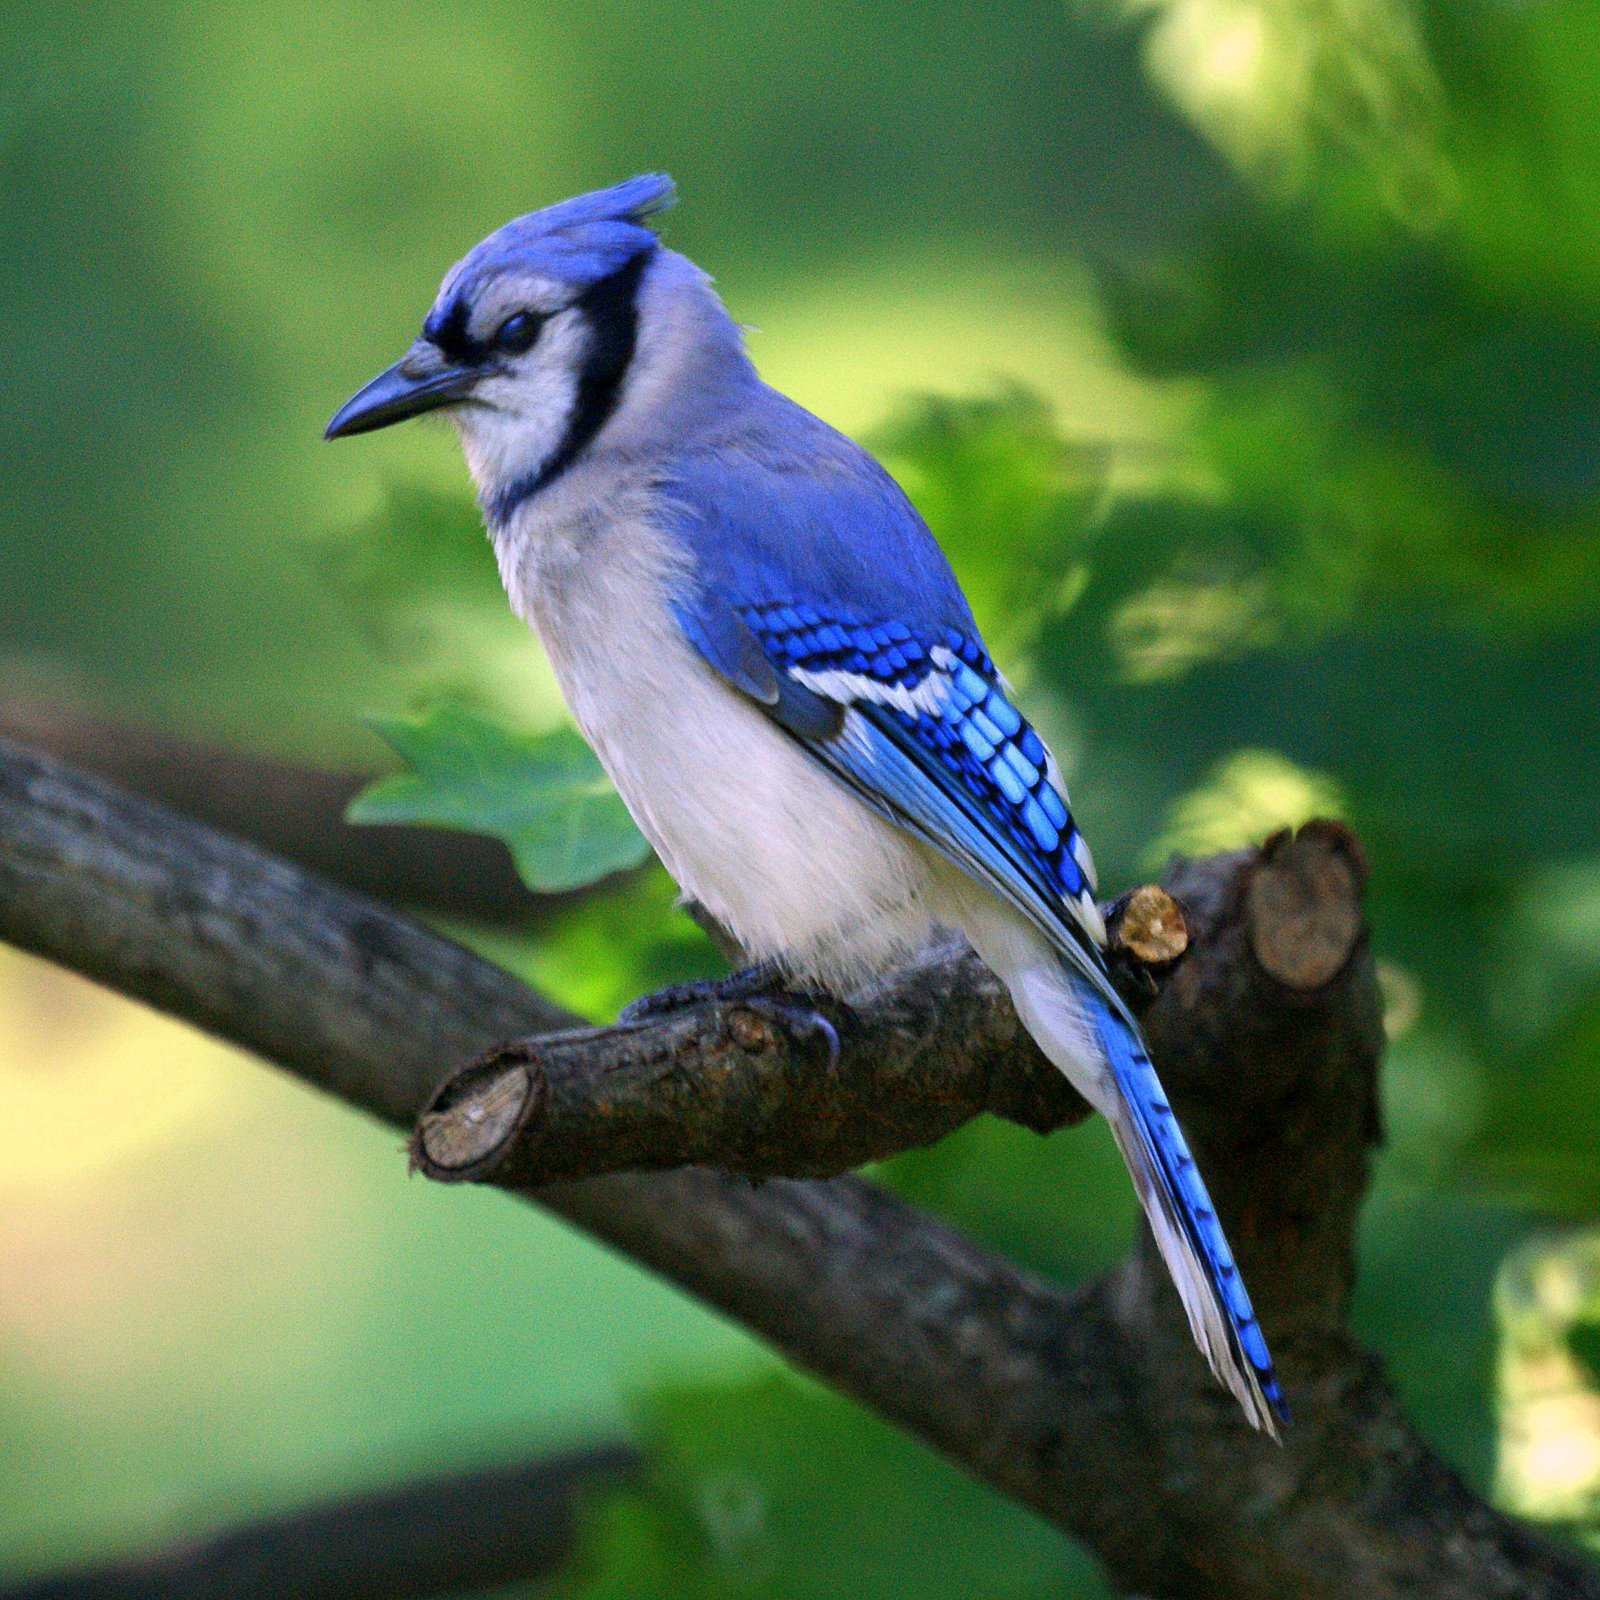 The blue jay canadian lovely bird basic facts Pictures of birds